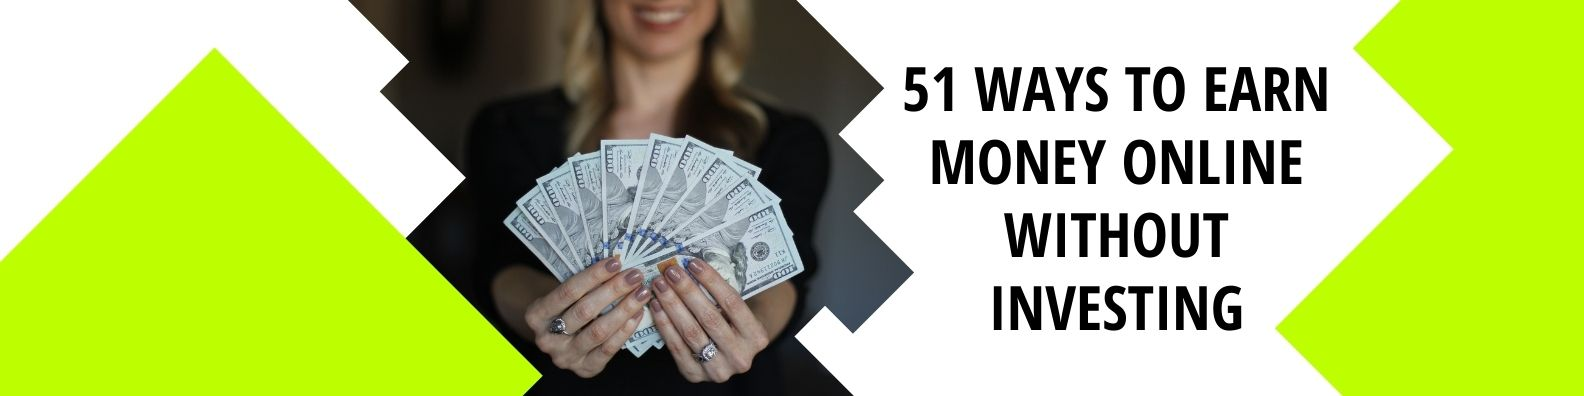 Daily earn money online without investment